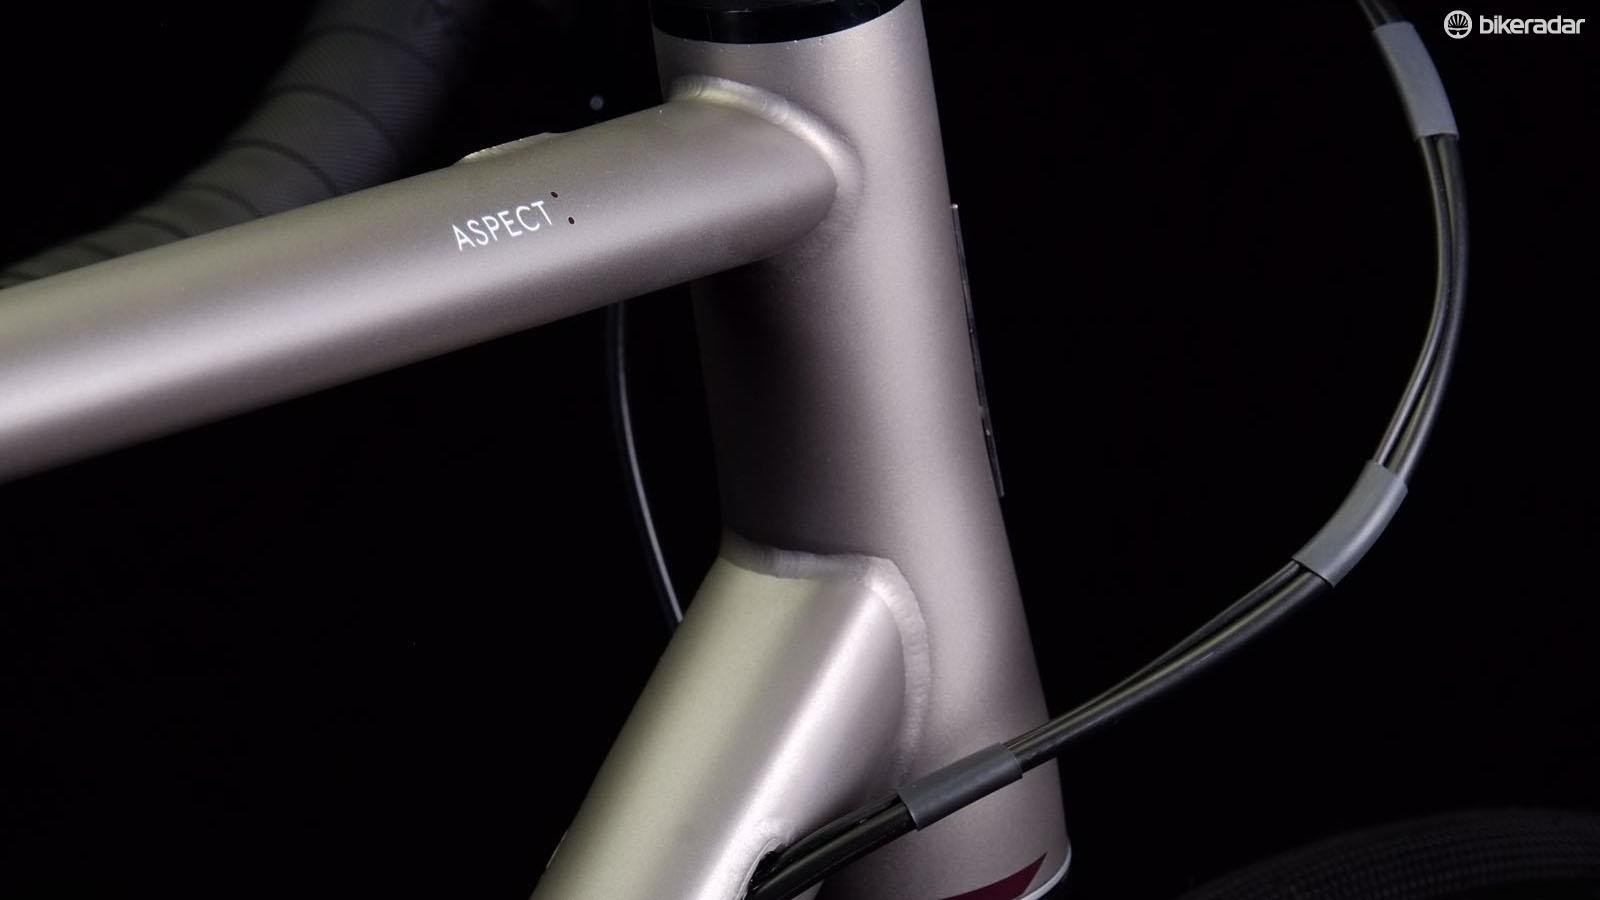 The welds on the Mason Aspect have the high-end finish Mason Cycles are becoming known for